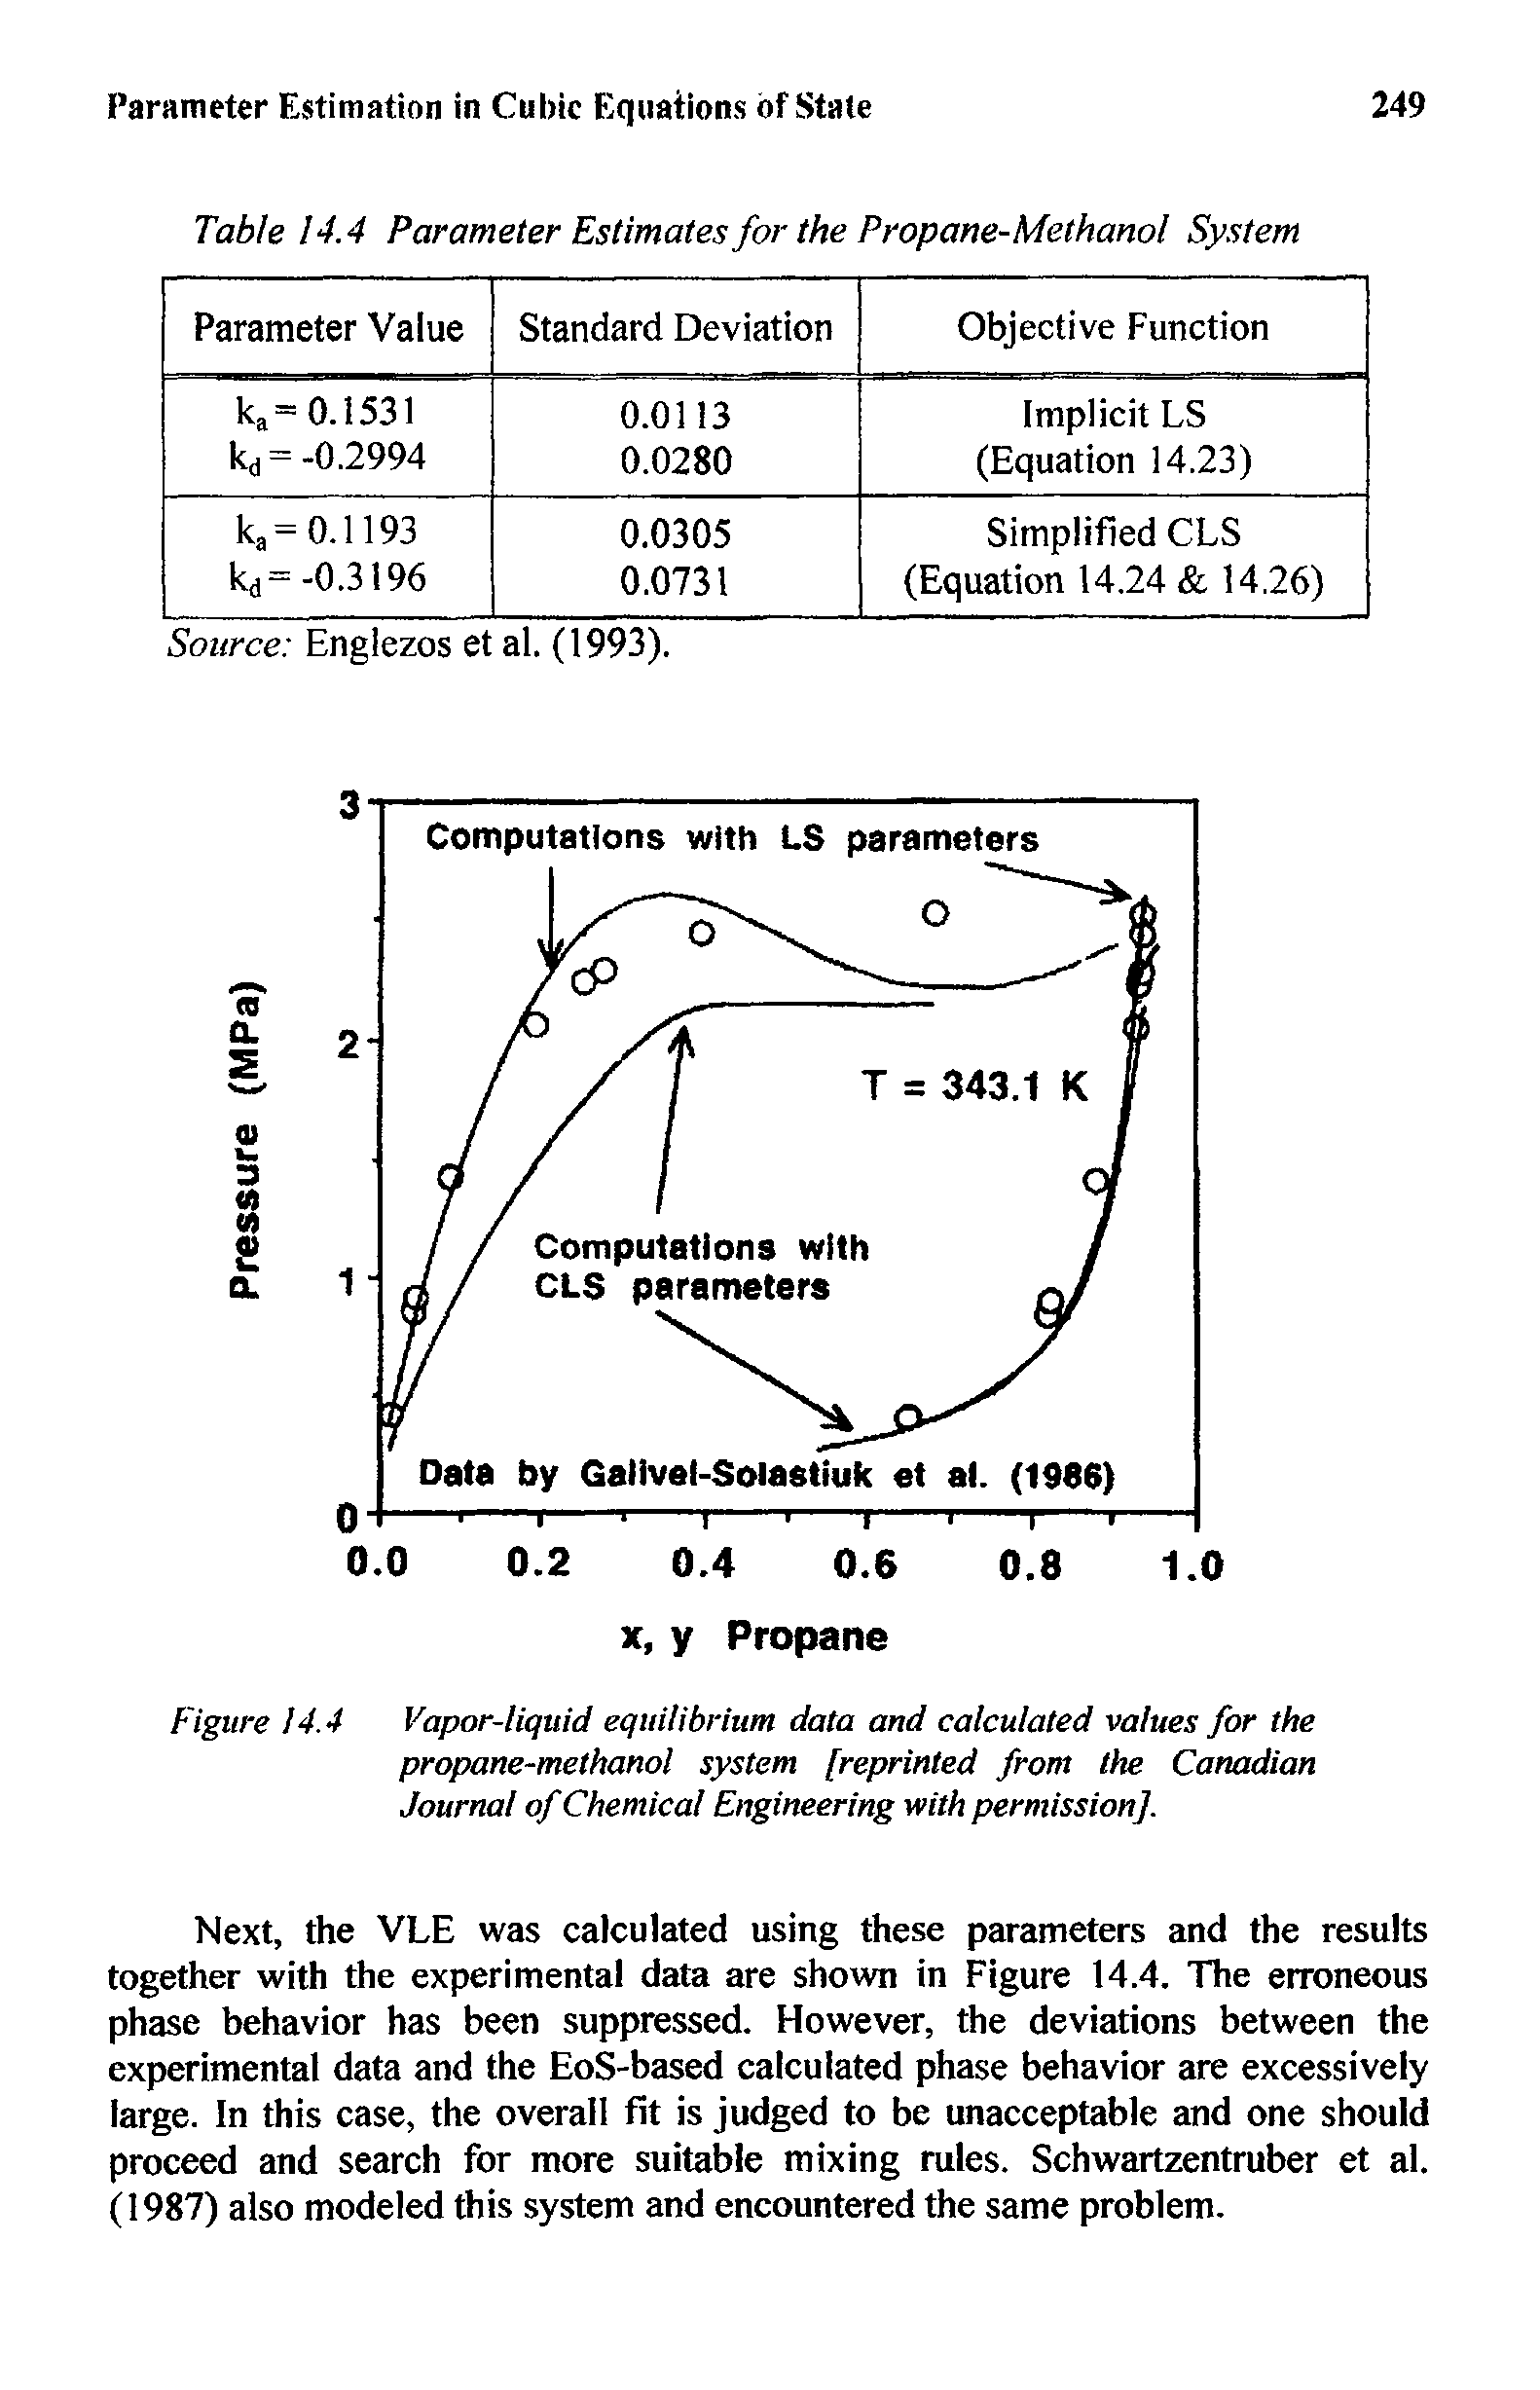 "Figure 14.4 <a href=""/info/vapor_liquid_equilibrium_data_for"">Vapor-liquid equilibrium data</a> and <a href=""/info/g_values_calculation"">calculated values</a> for the <a href=""/info/the_propane_methanol_system"">propane-methanol system</a> [reprinted from the Canadian Journal of <a href=""/info/chemical_engineering"">Chemical Engineering</a> with permission]."